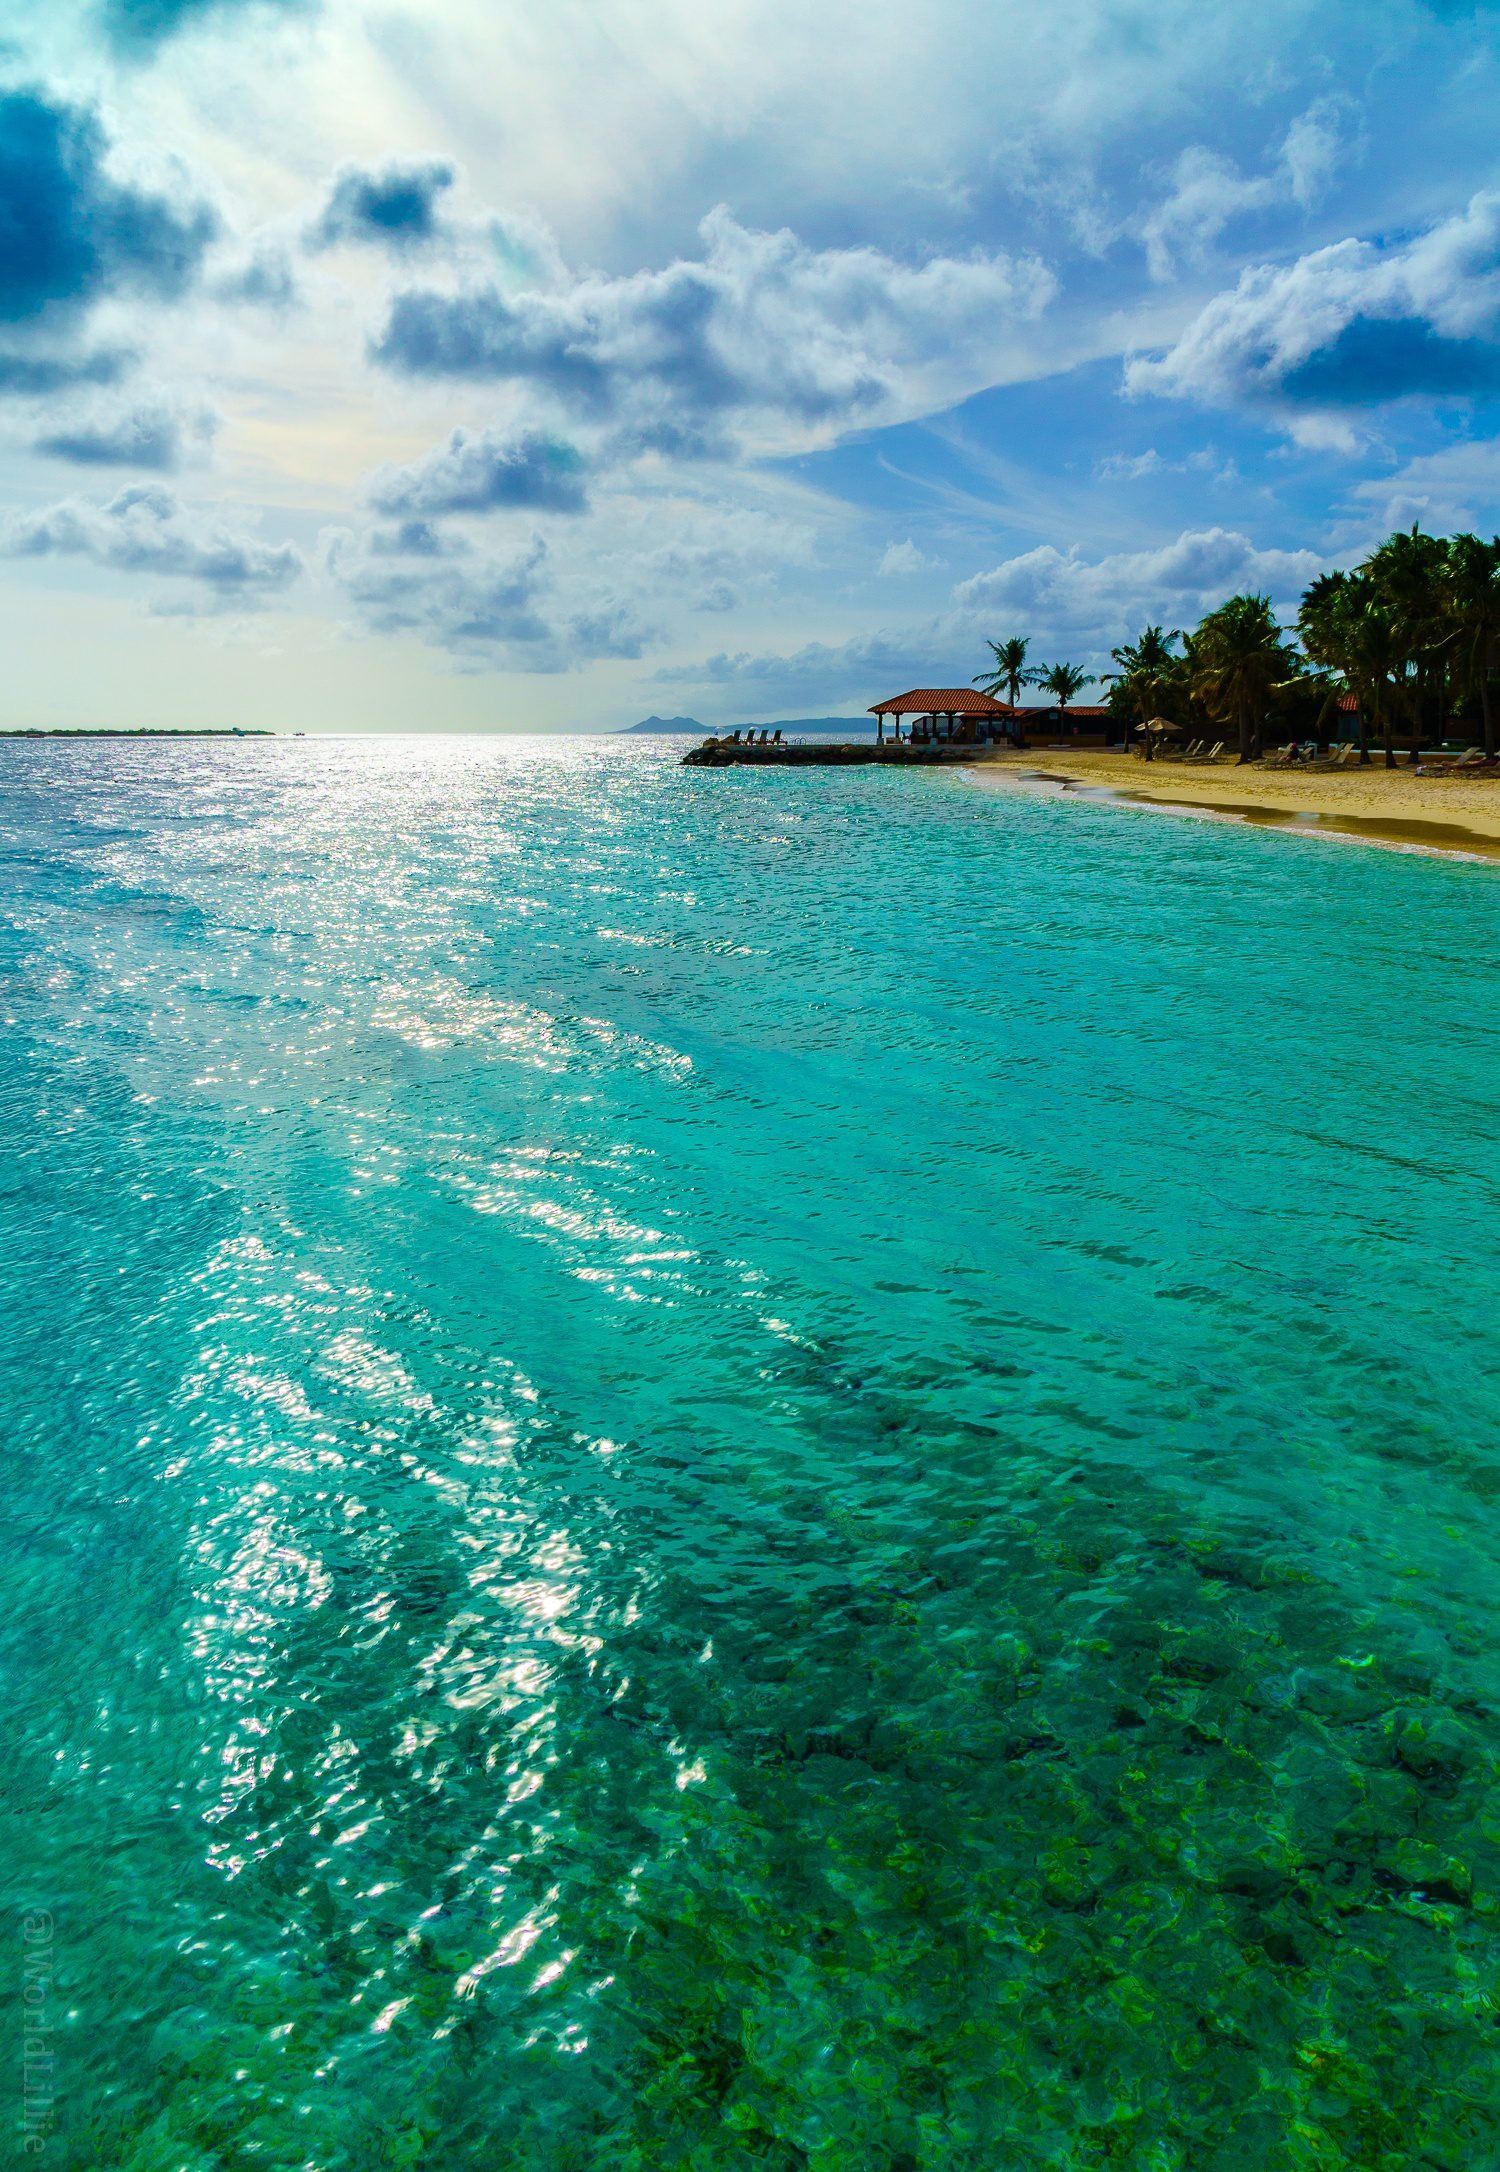 Now that's a beauty of a Caribbean beach. Bonaire is a fascinating island near Aruba that many don't know about.